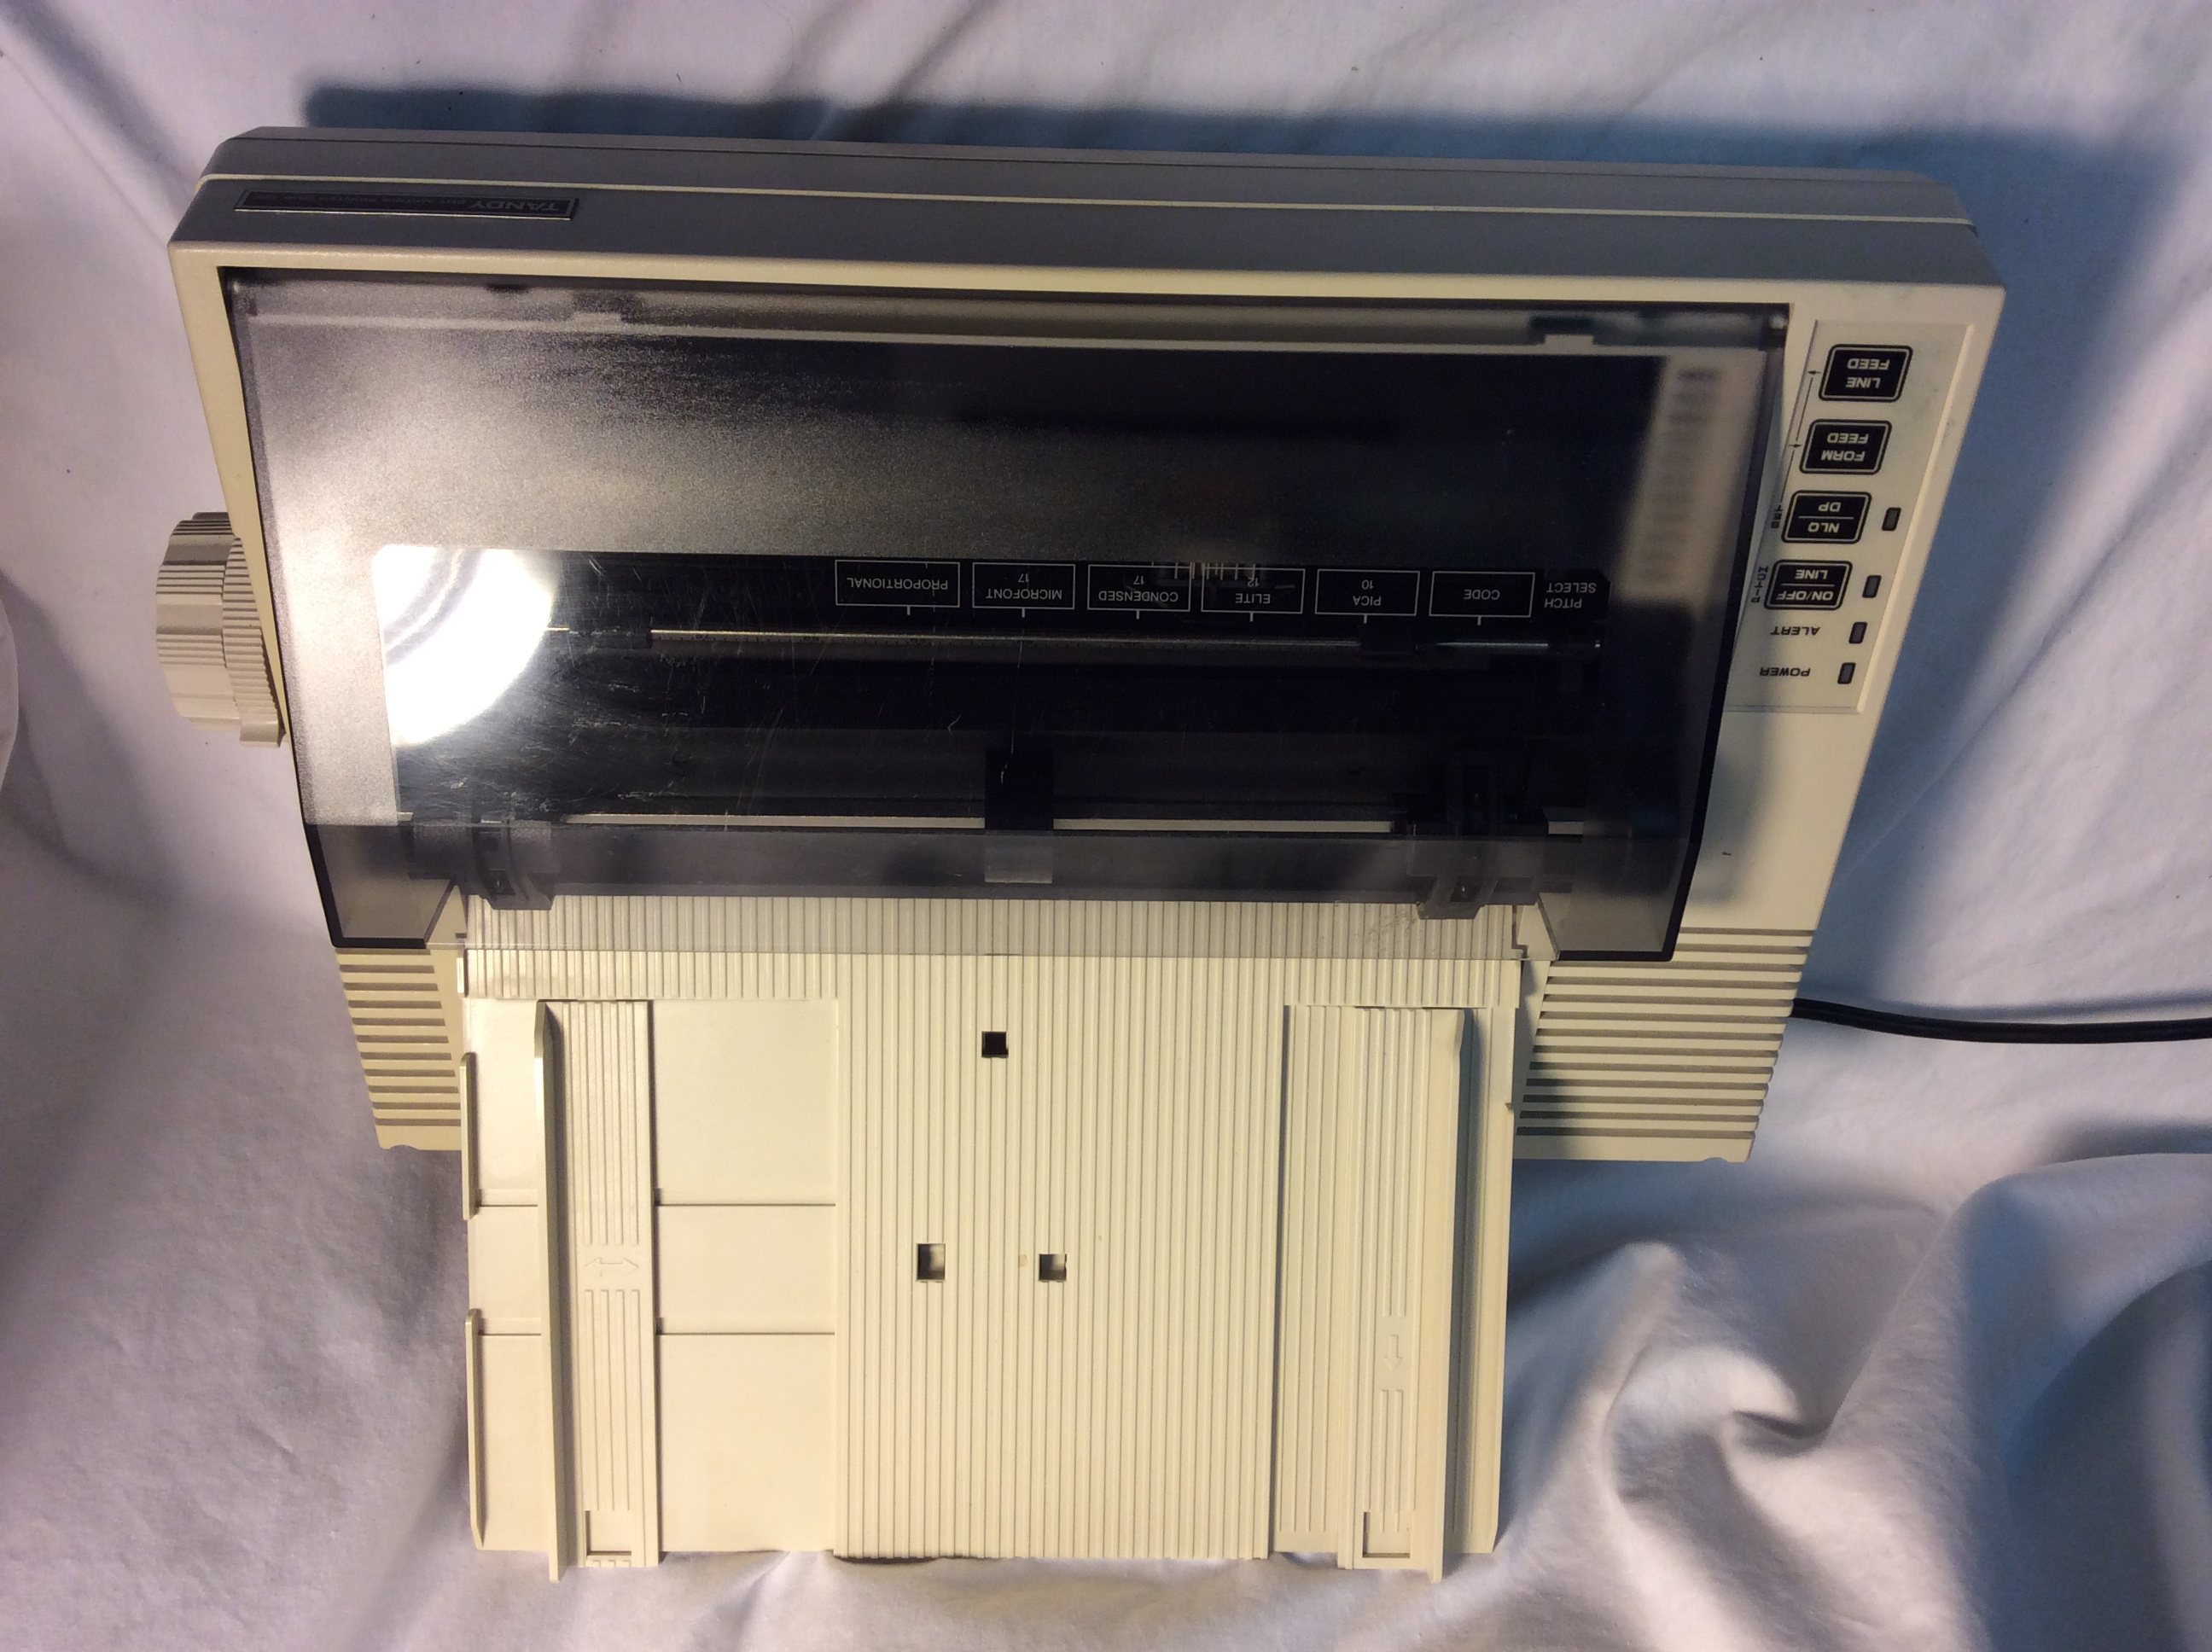 Tandy DMP 132 Dot matrix printer, cream coloured